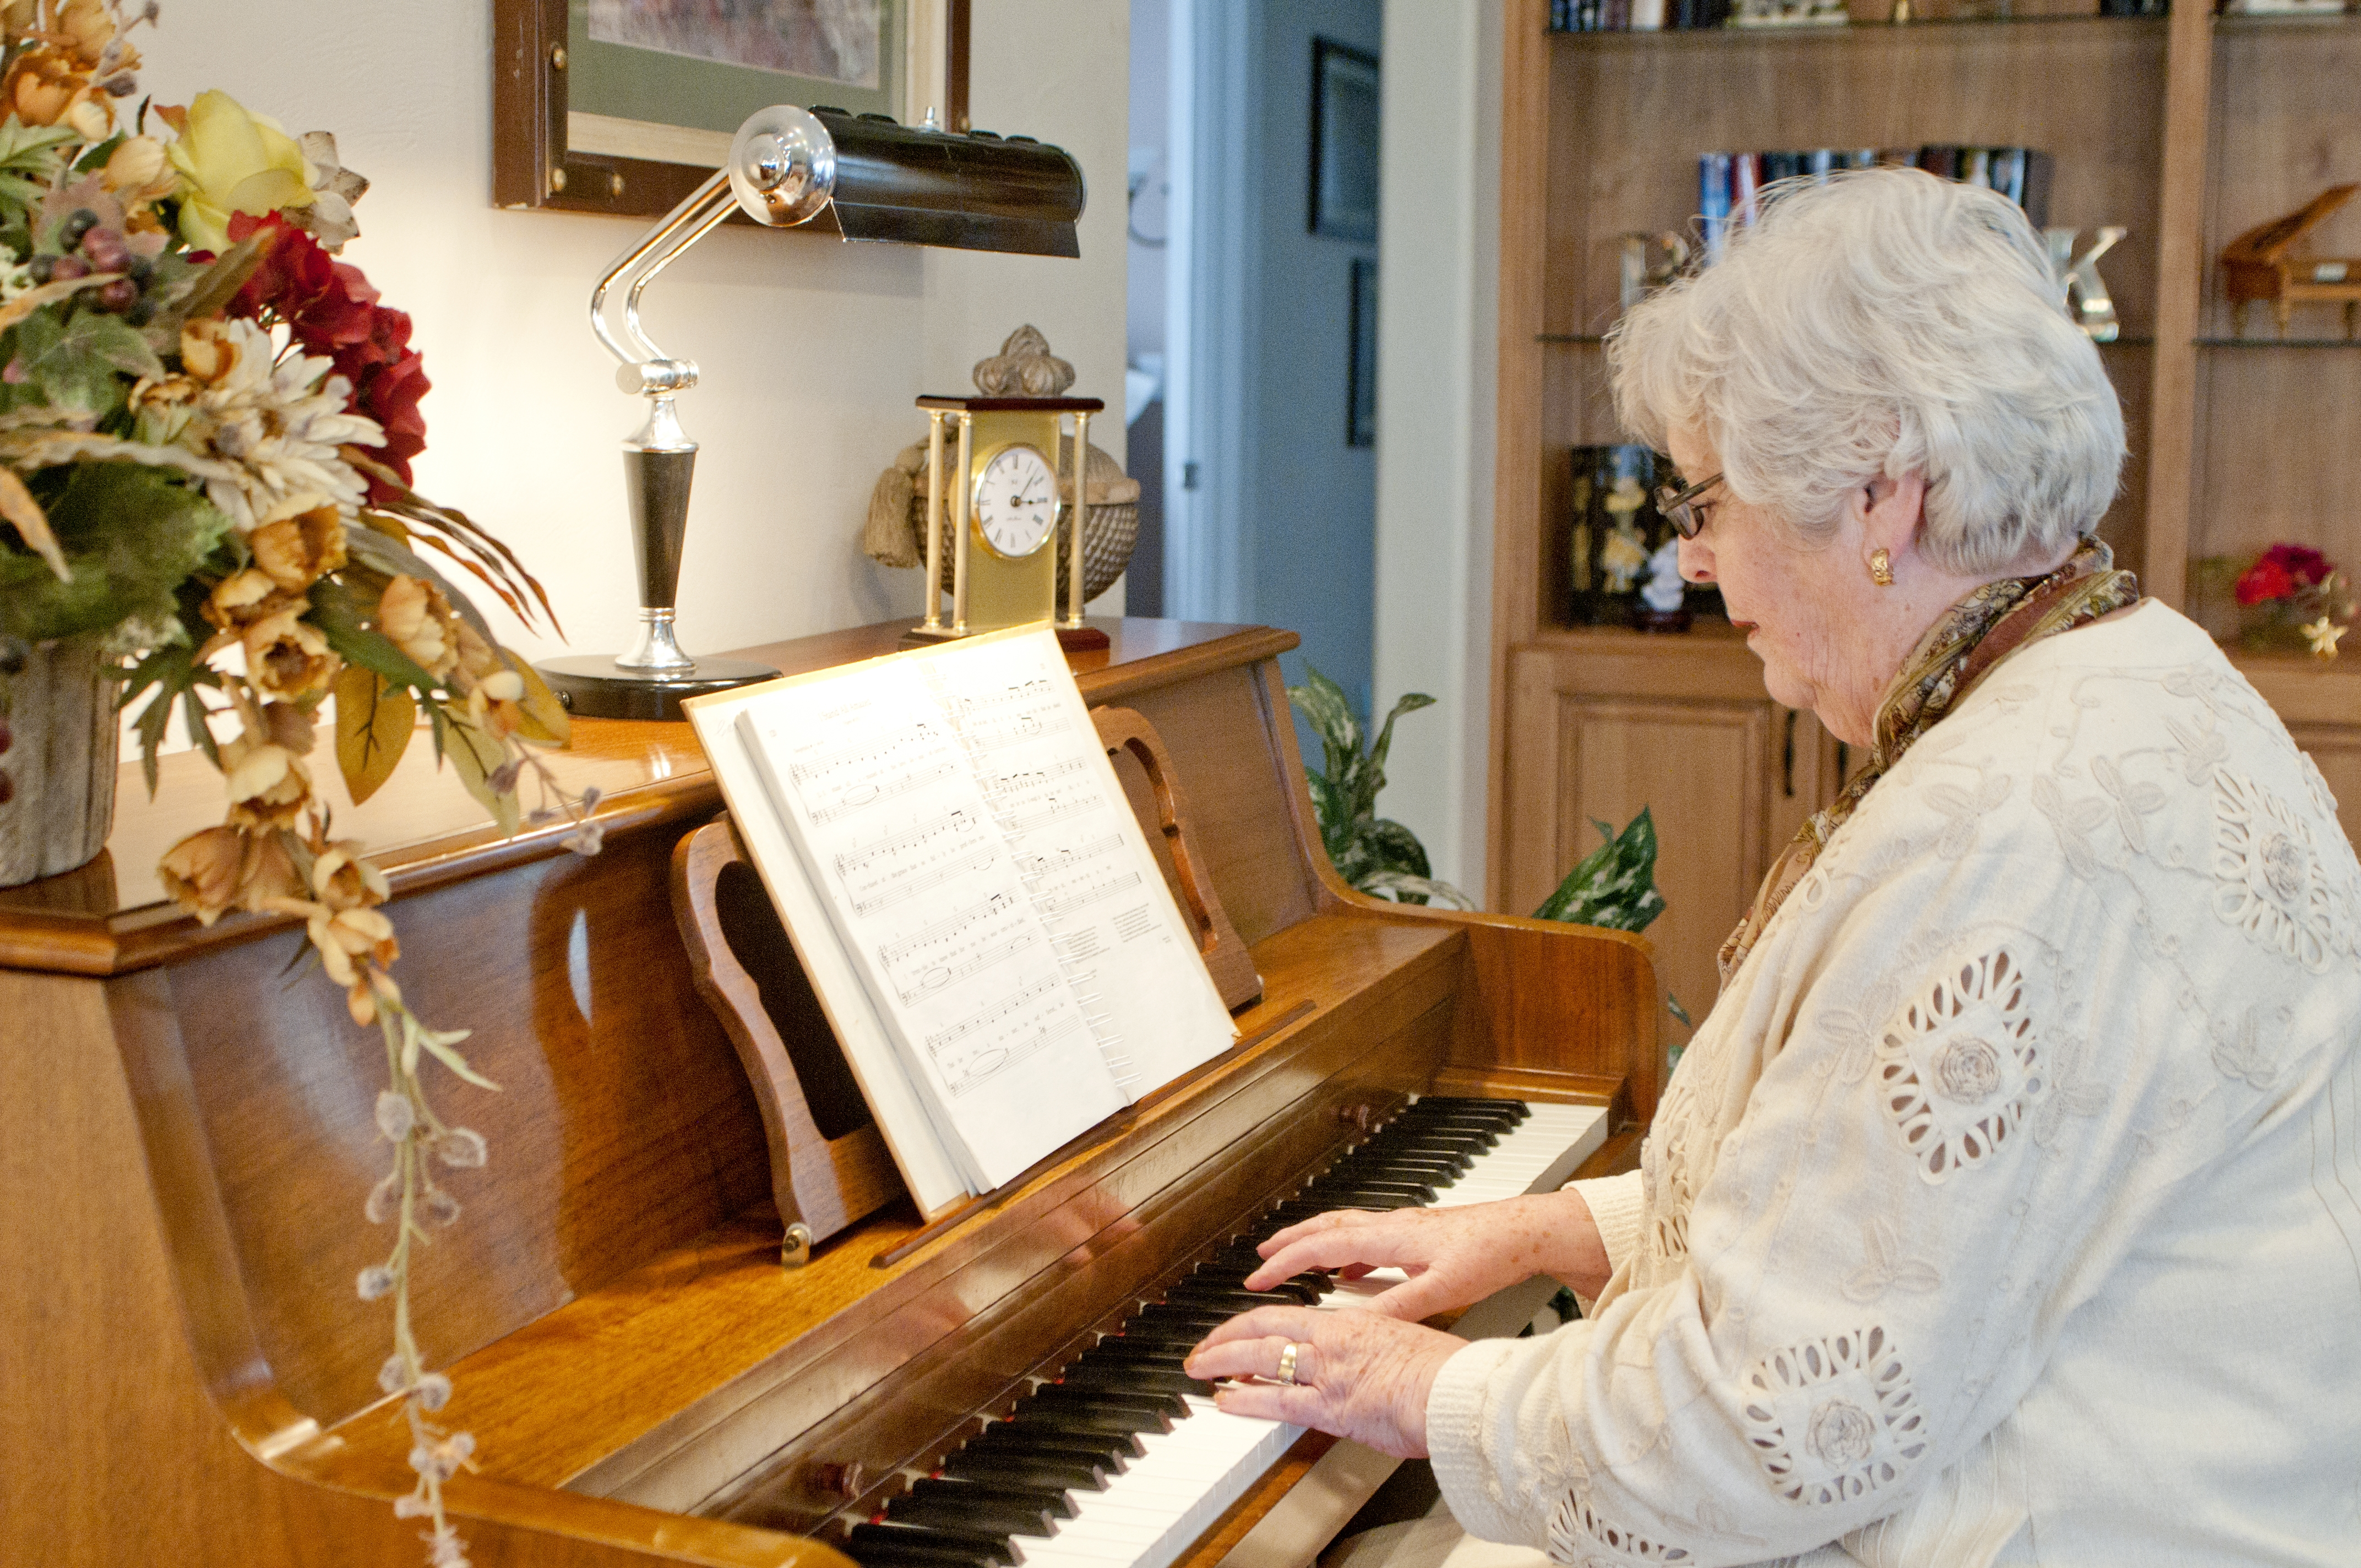 An older woman plays the piano